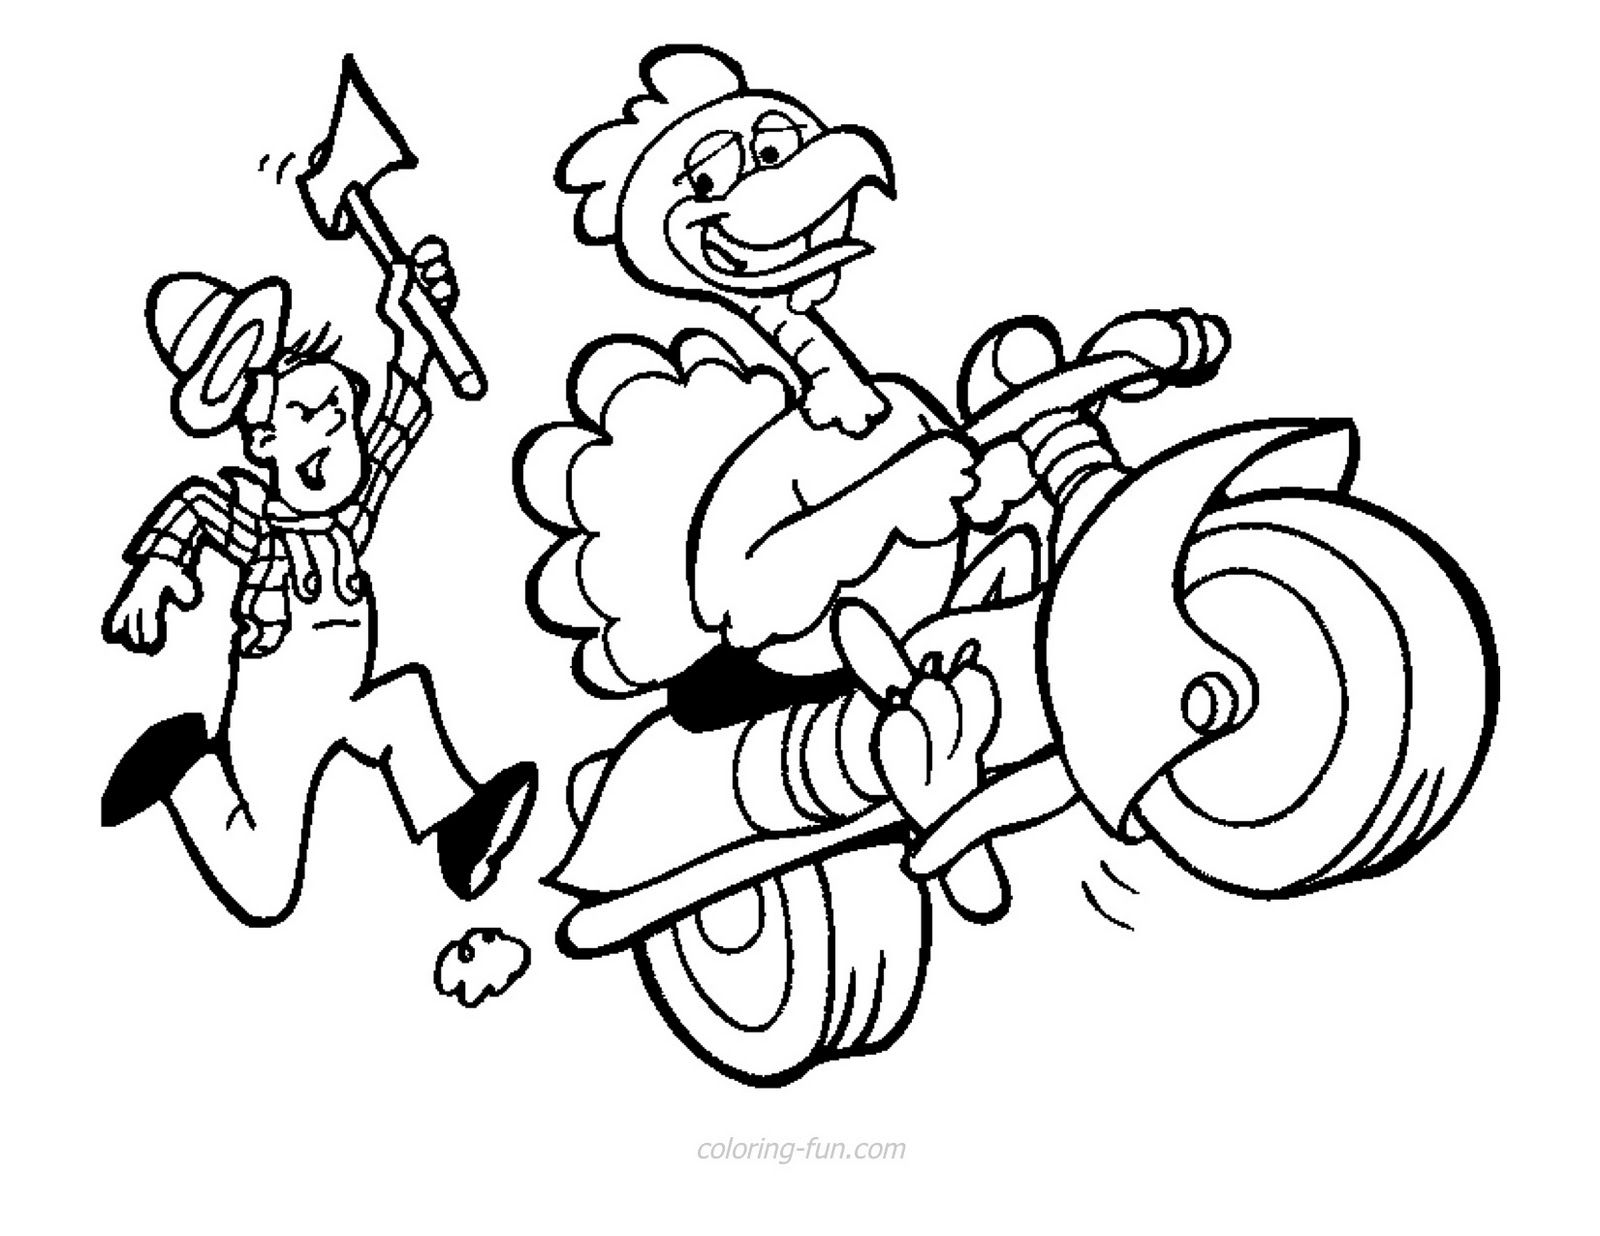 november coloring pages plus you can color it in if you get bored with your - Coloring Pages That You Can Color